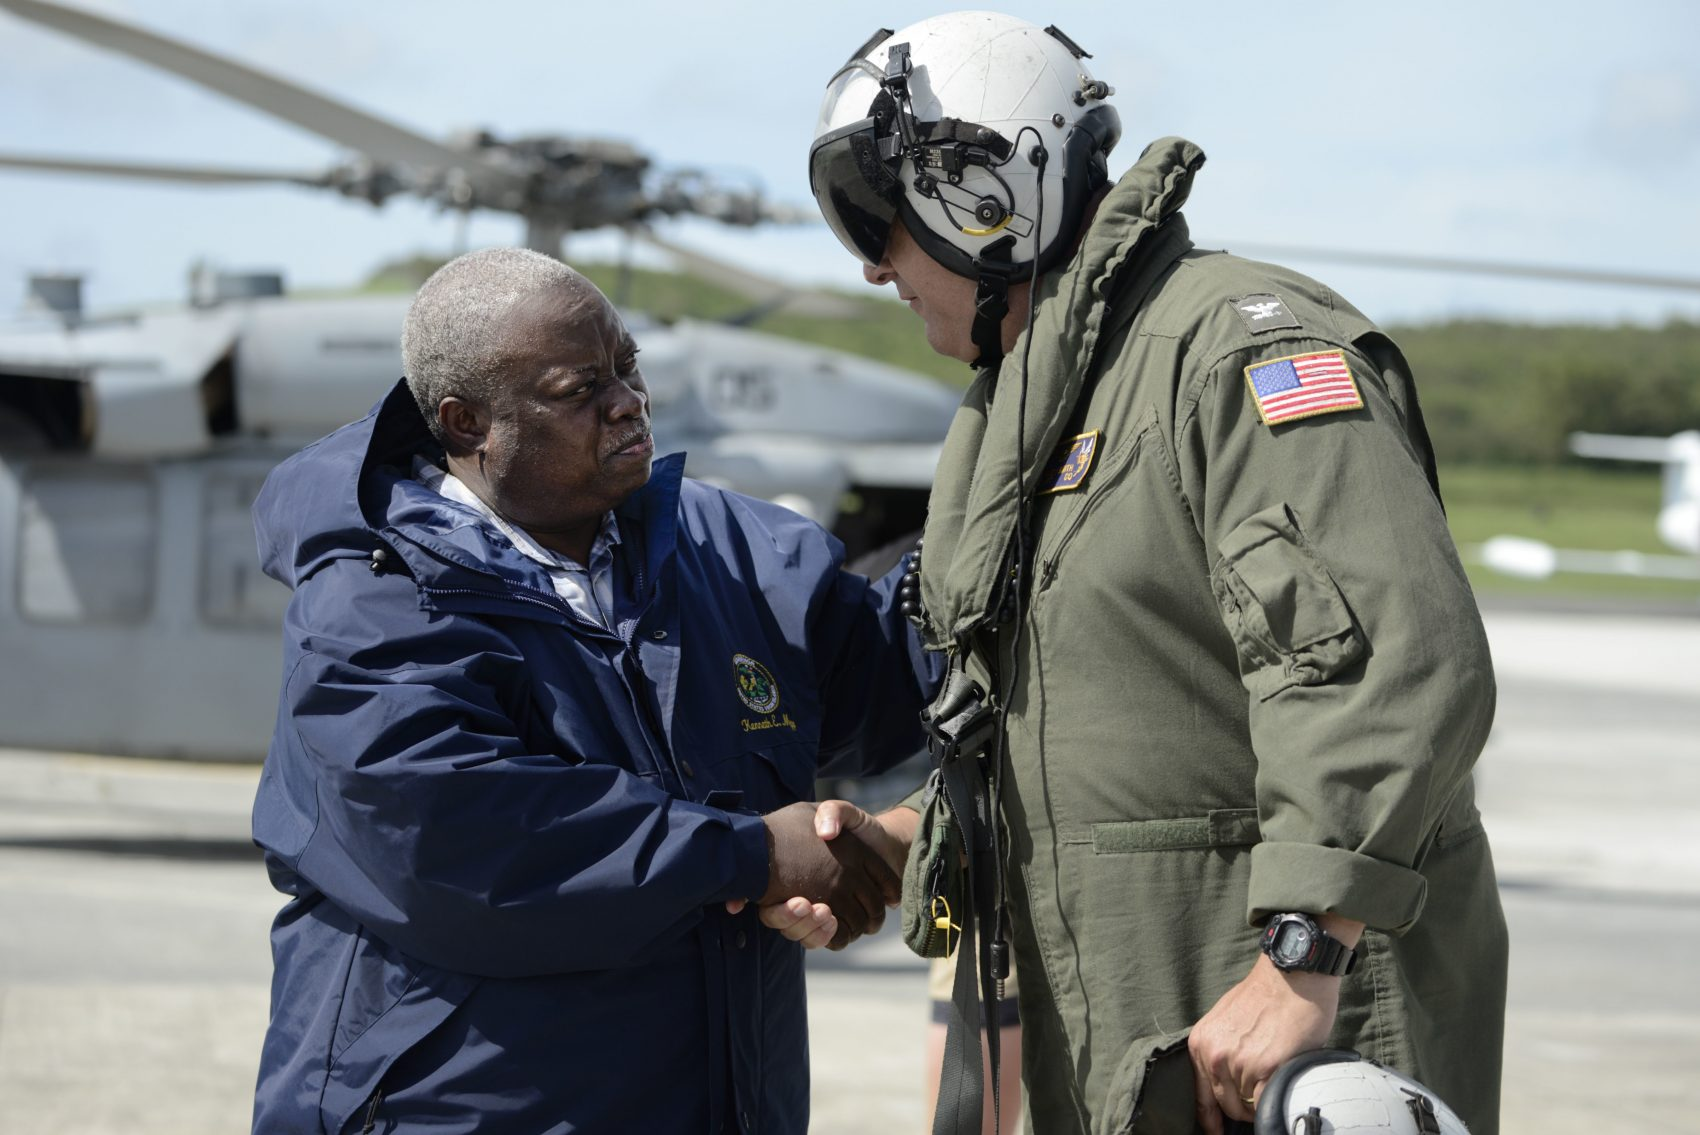 U.S. Virgin Islands Gov. Kenneth Mapp arrives at the Charles F. Blair National Guard Hangar after flying over St. Thomas, one of the islands hit by Hurricane Irma in St. Croix, Friday, Sept. 8, 2017. (Carlos Giusti/AP)